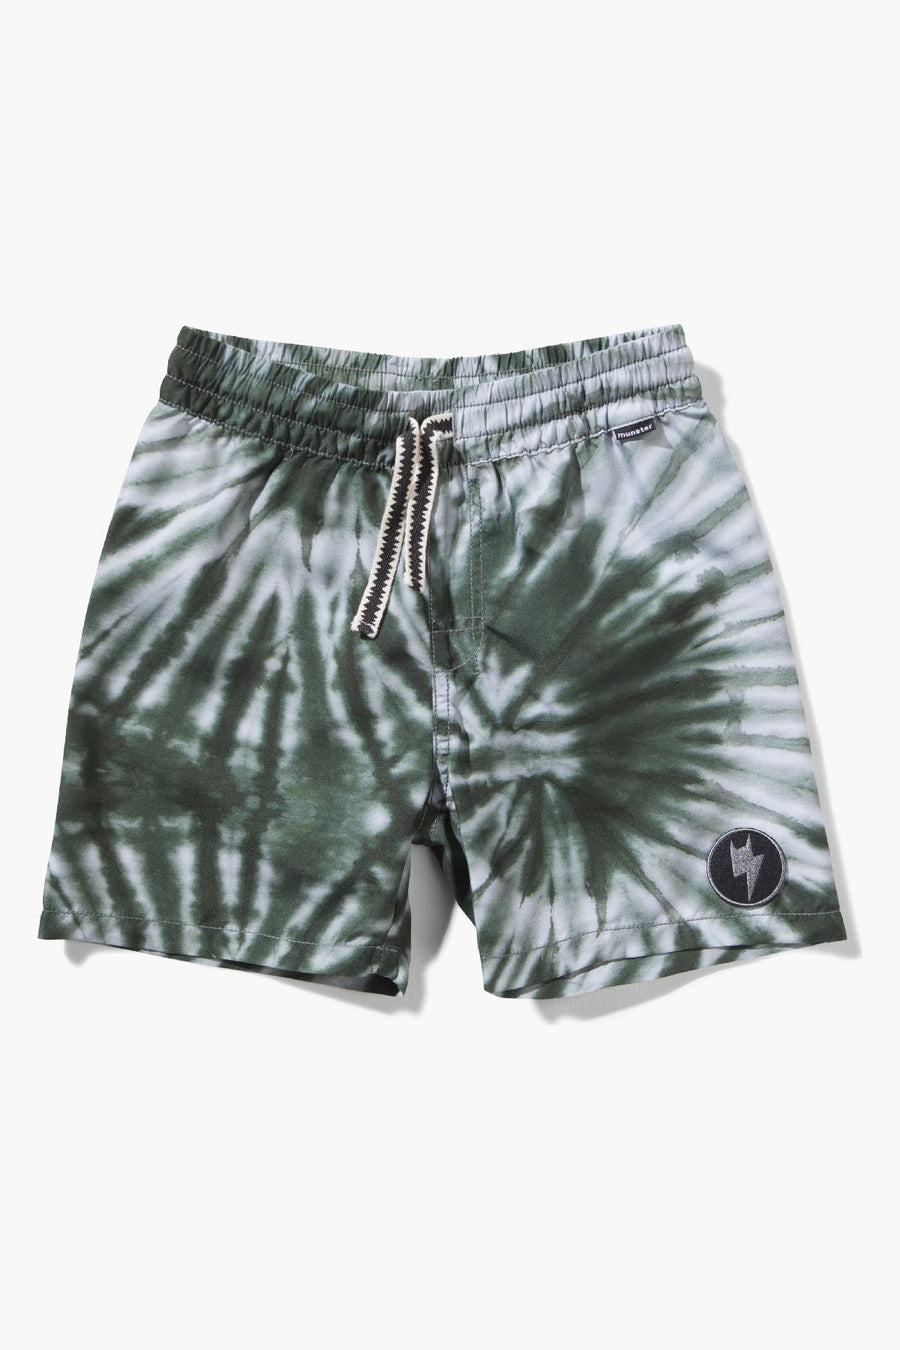 Munster Kids X-Ray Boys Shorts - Green